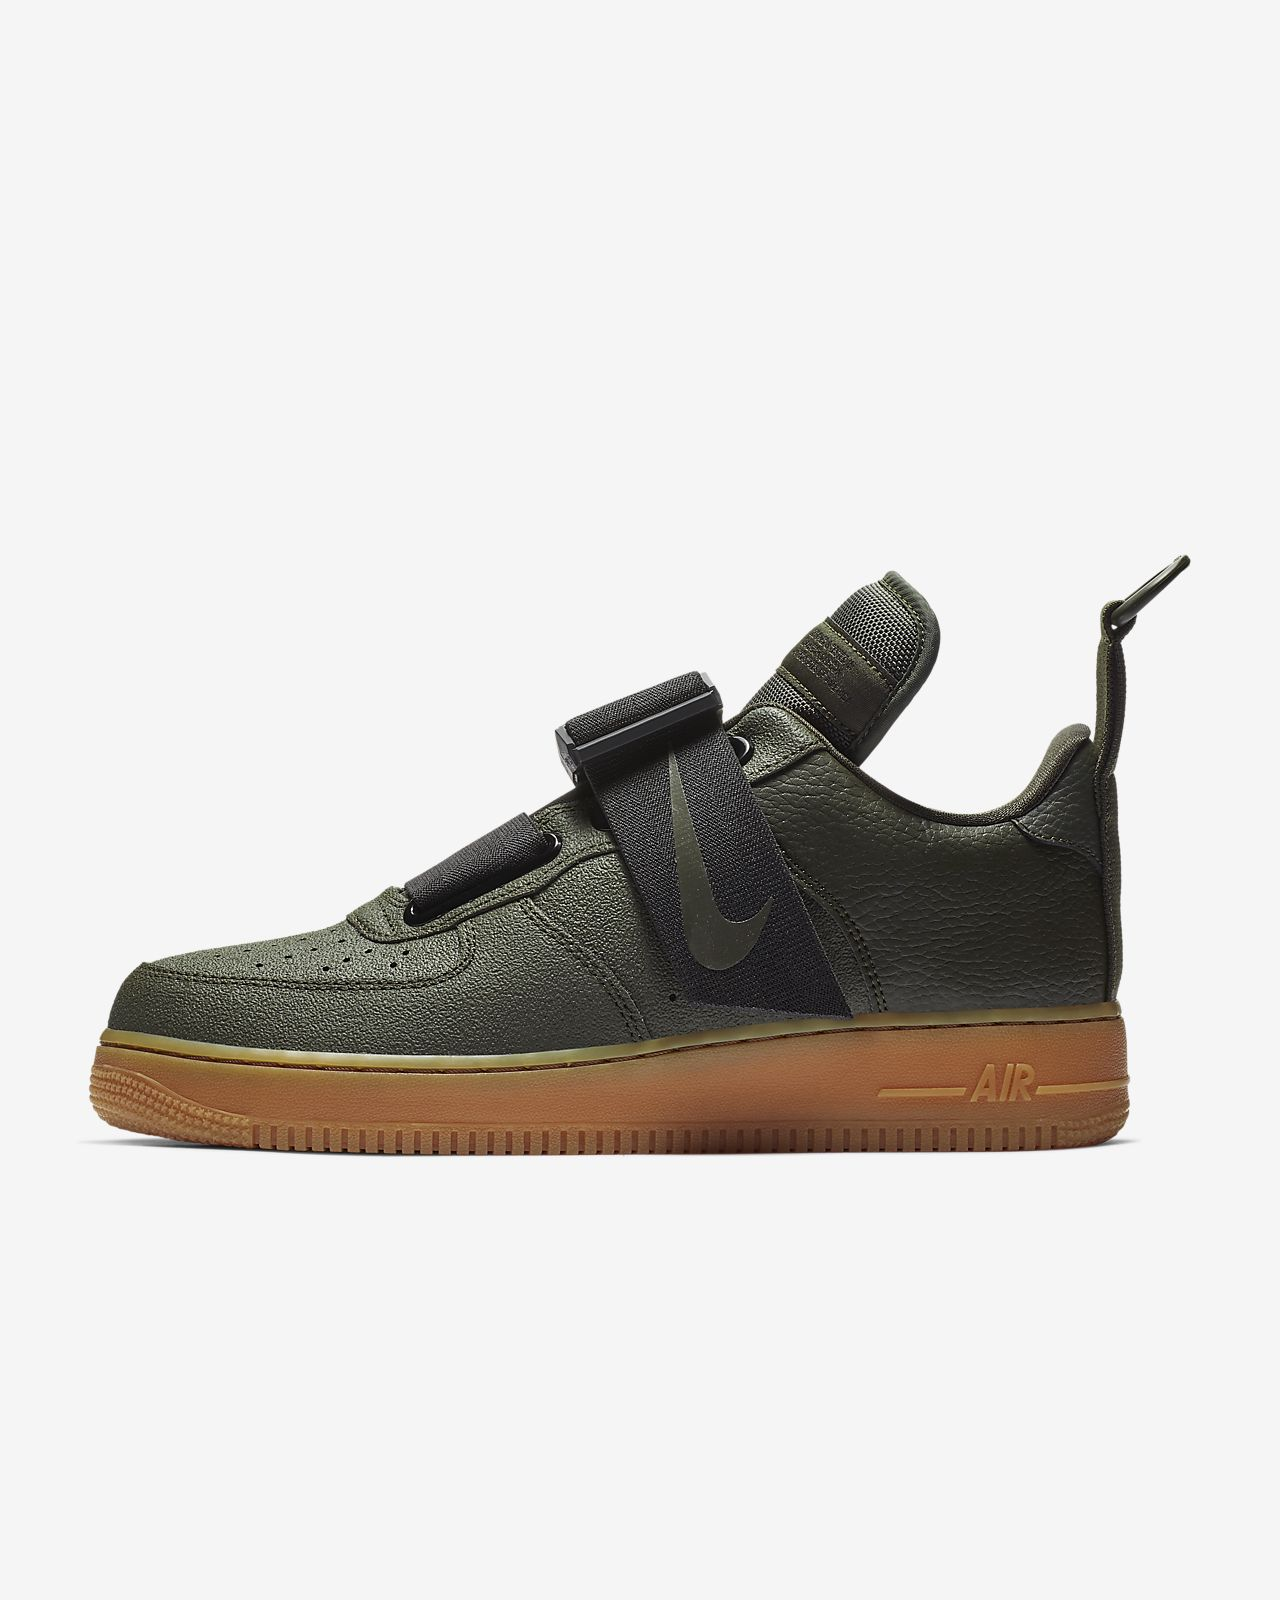 finest selection f1c53 21998 Low Resolution Nike Air Force 1 Utility Herenschoen Nike Air Force 1  Utility Herenschoen